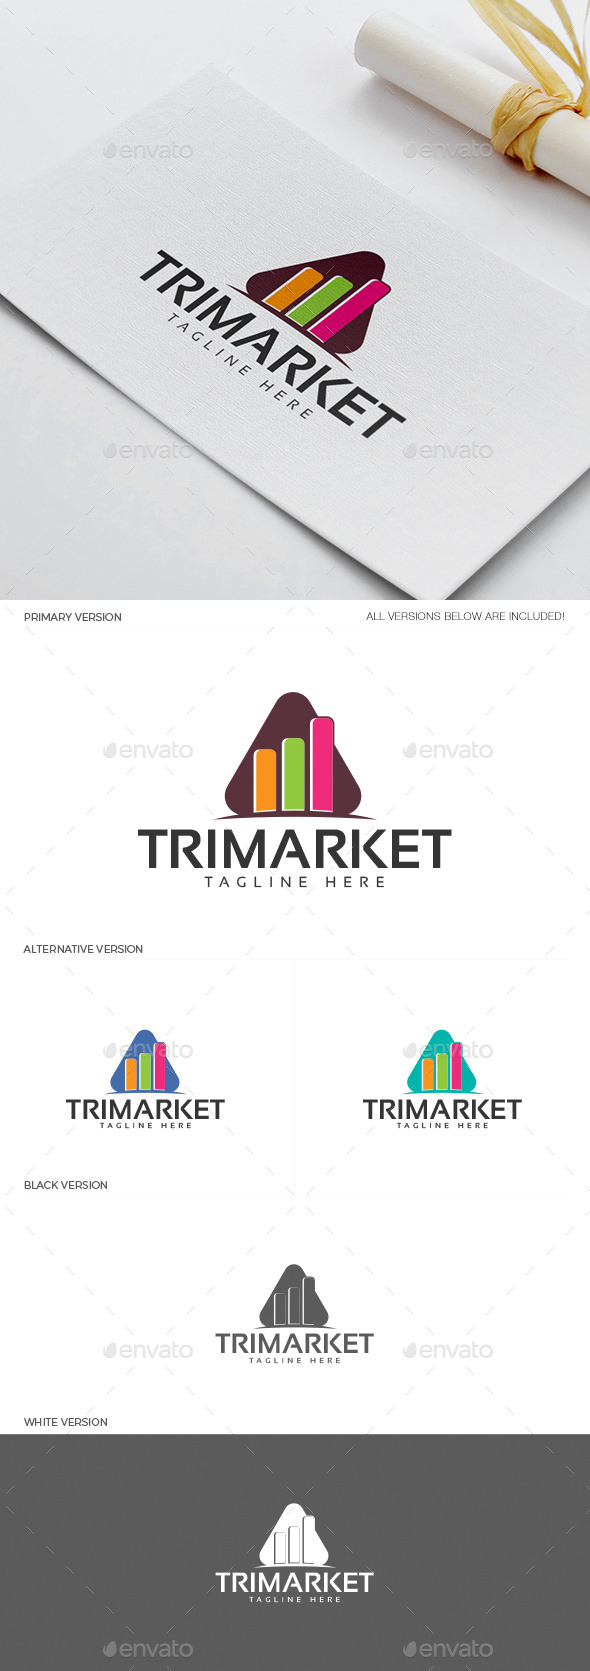 Trimarket Logo - Objects Logo Templates